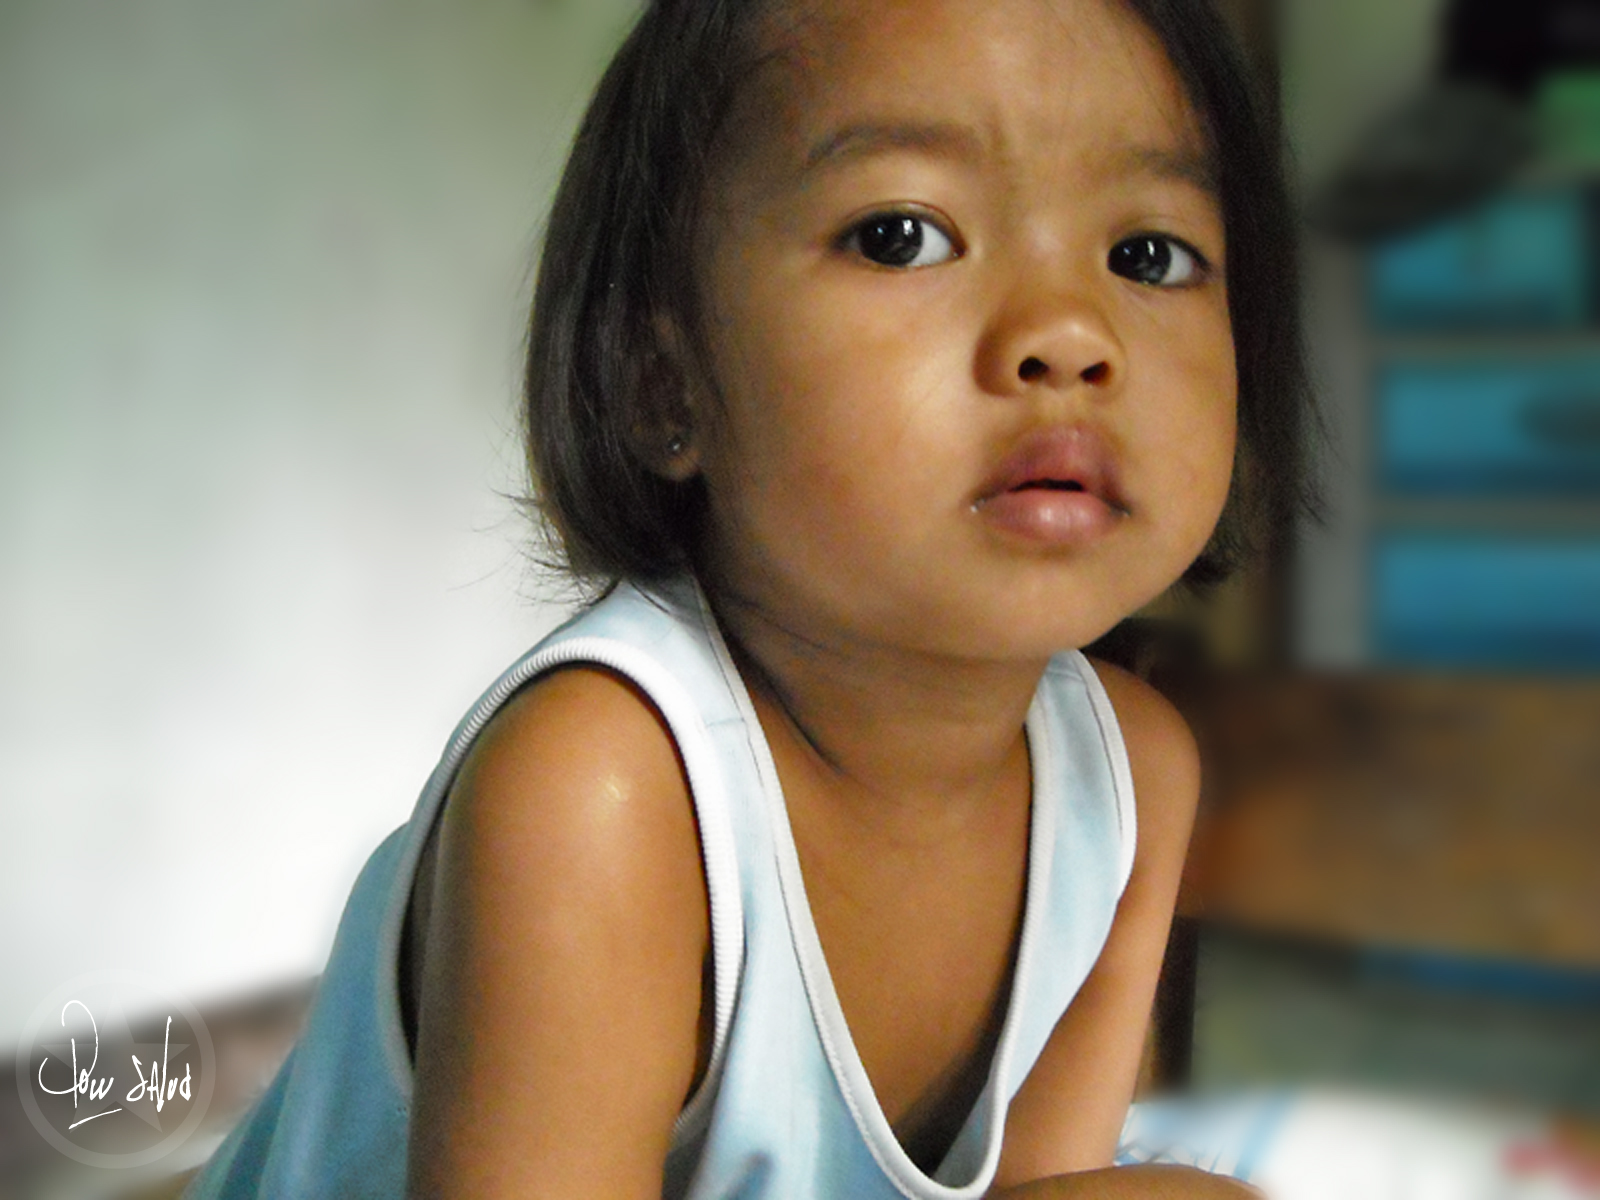 Pictures of asian kids